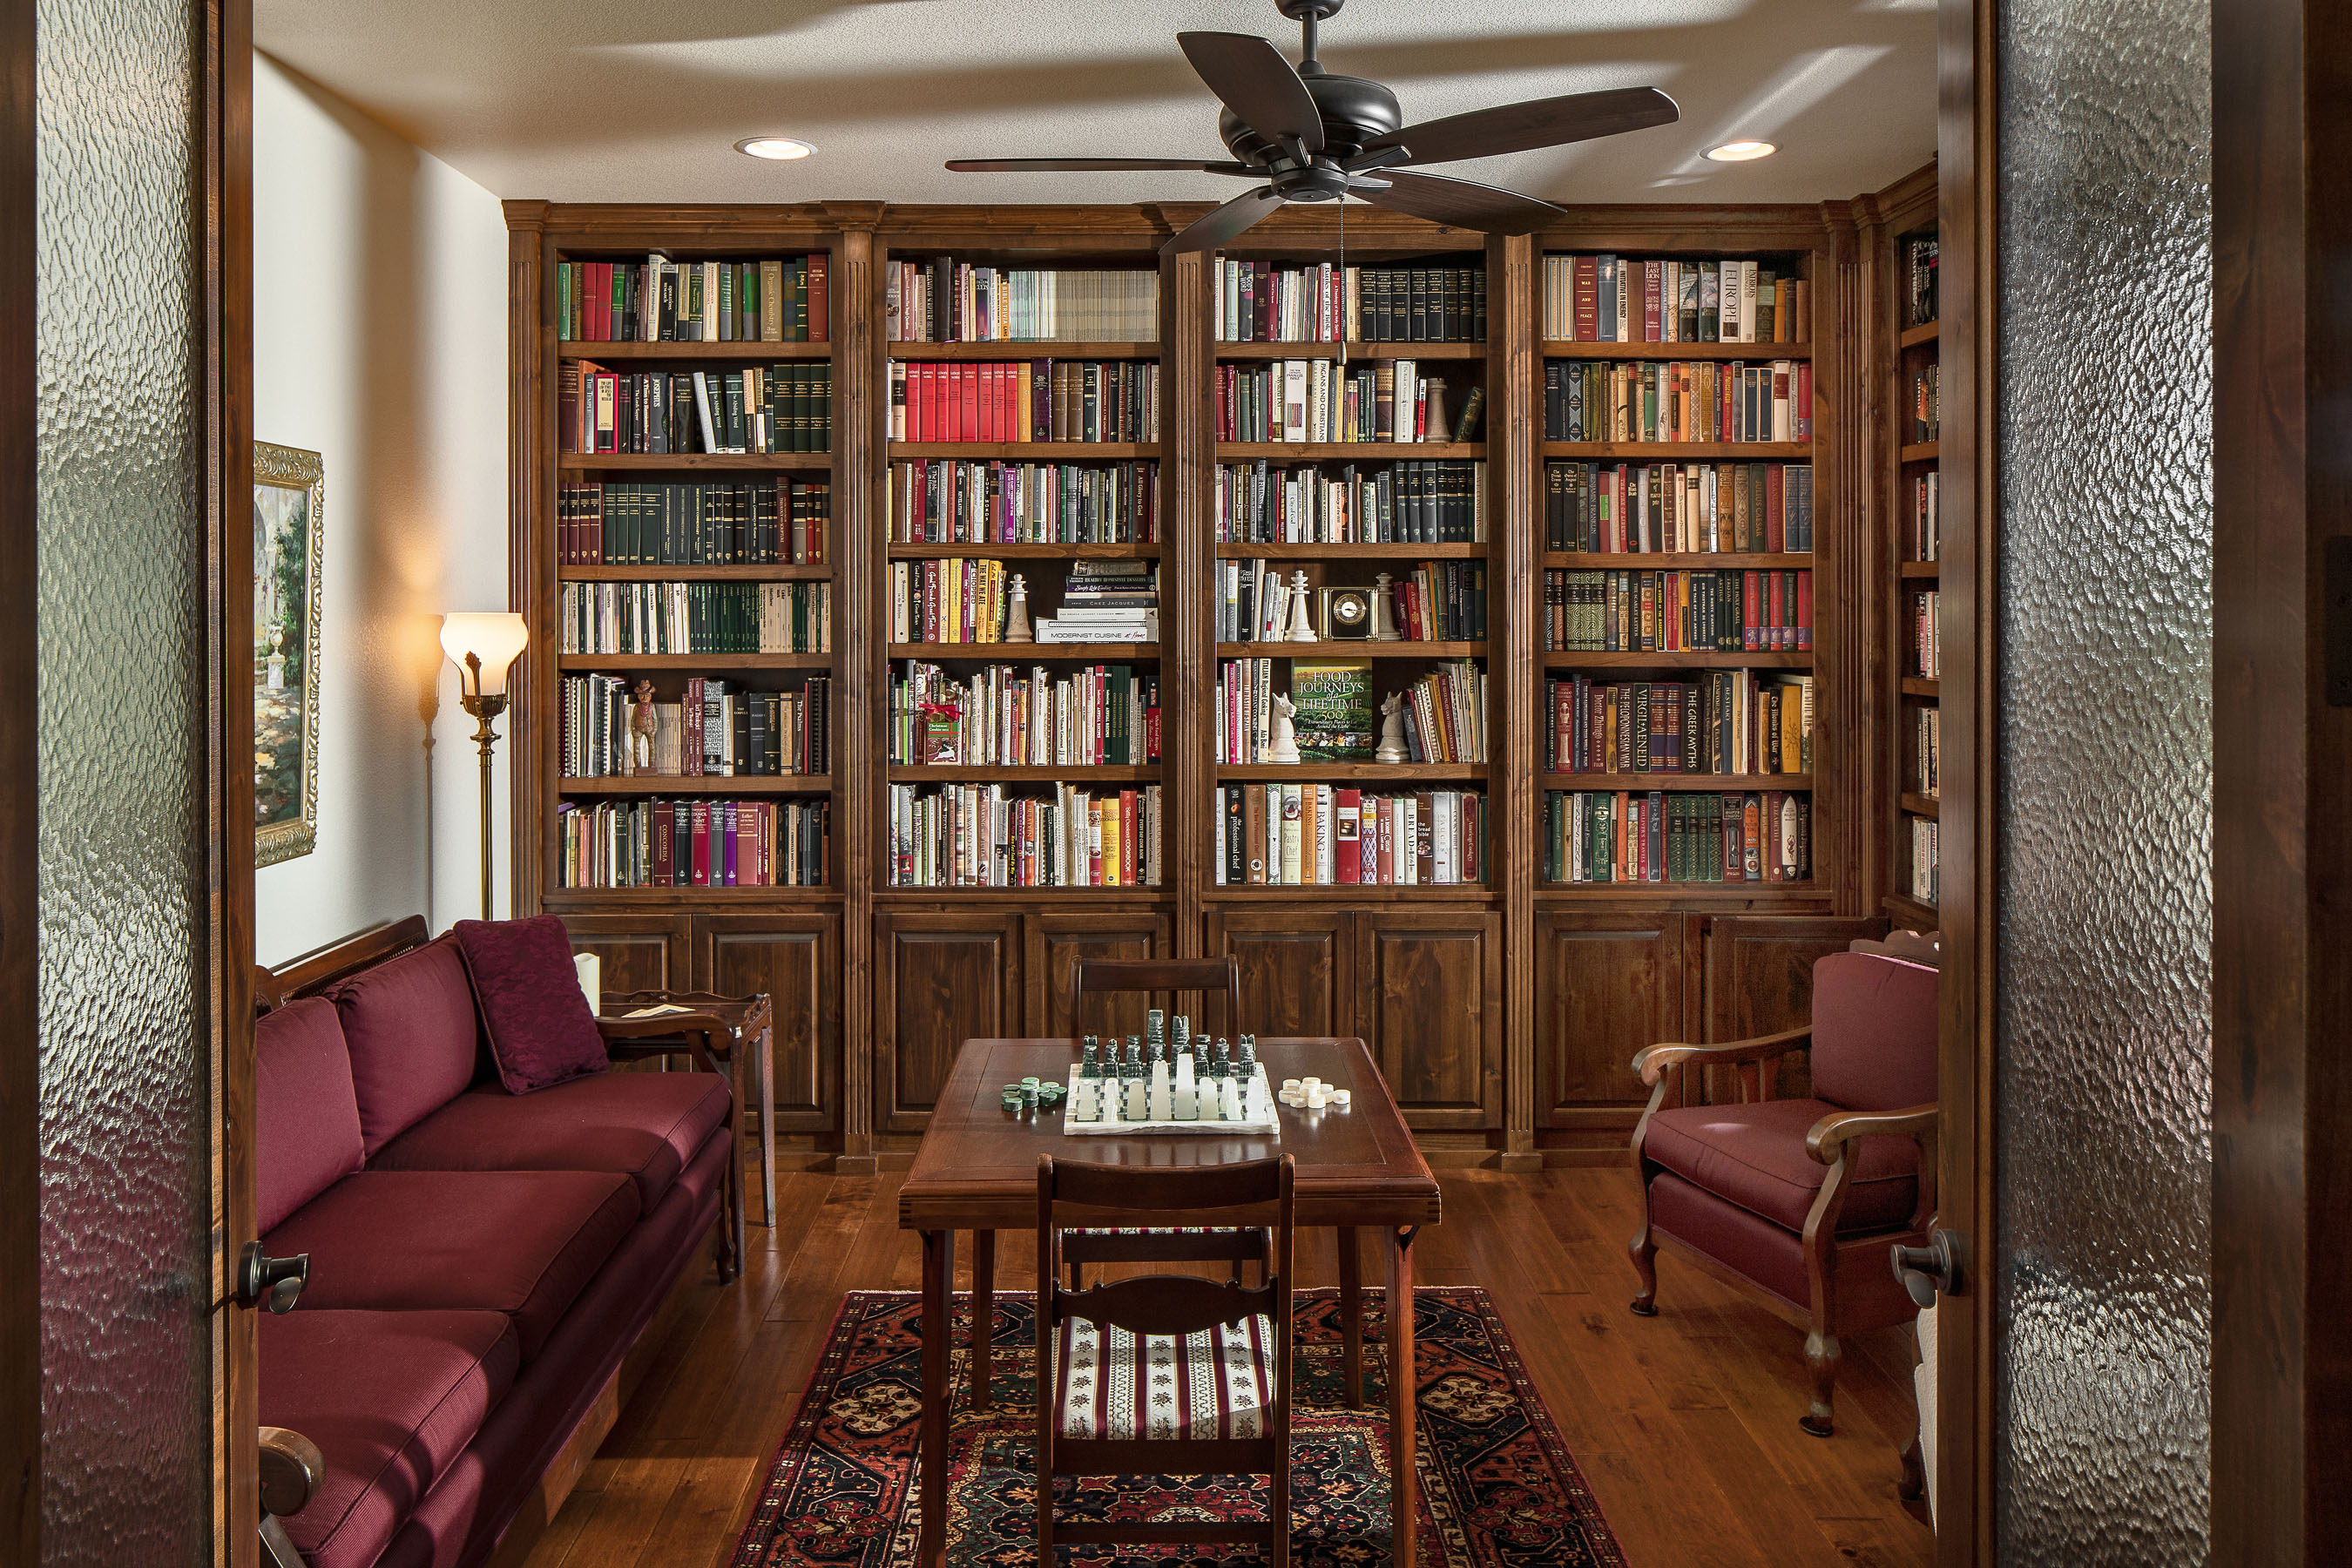 Interiors Photography • Library by Rentfrow Design